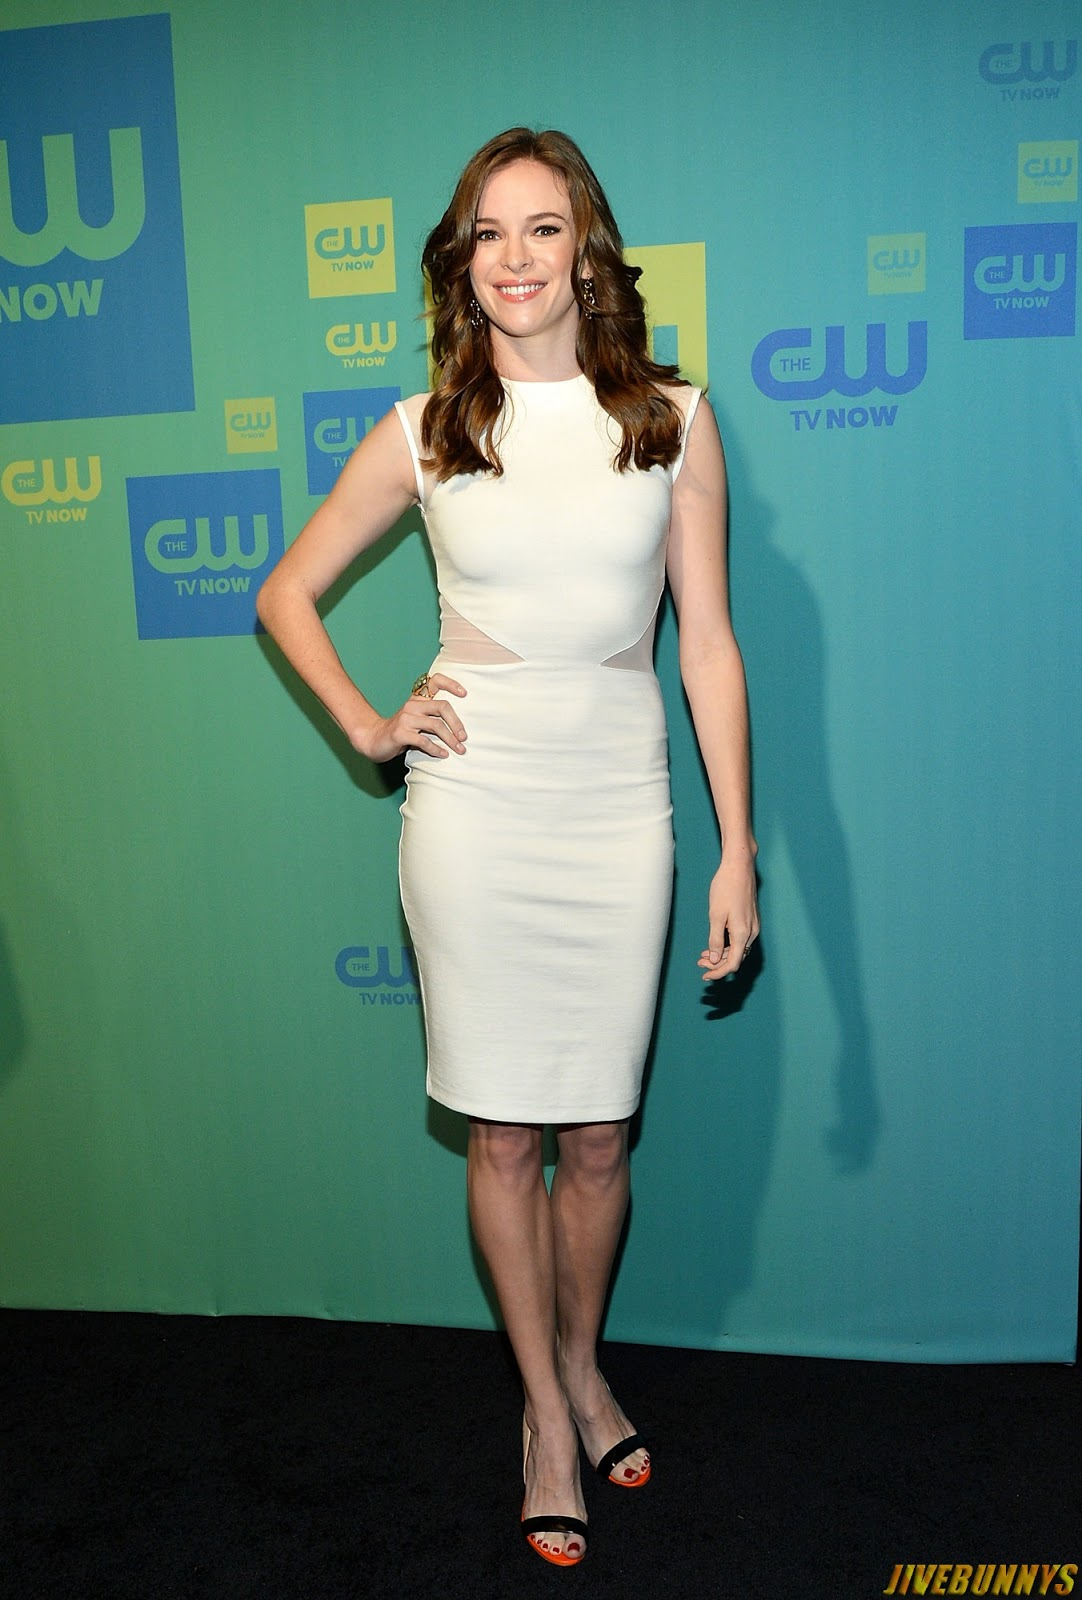 The CW Network's 2014 Upfront in NY